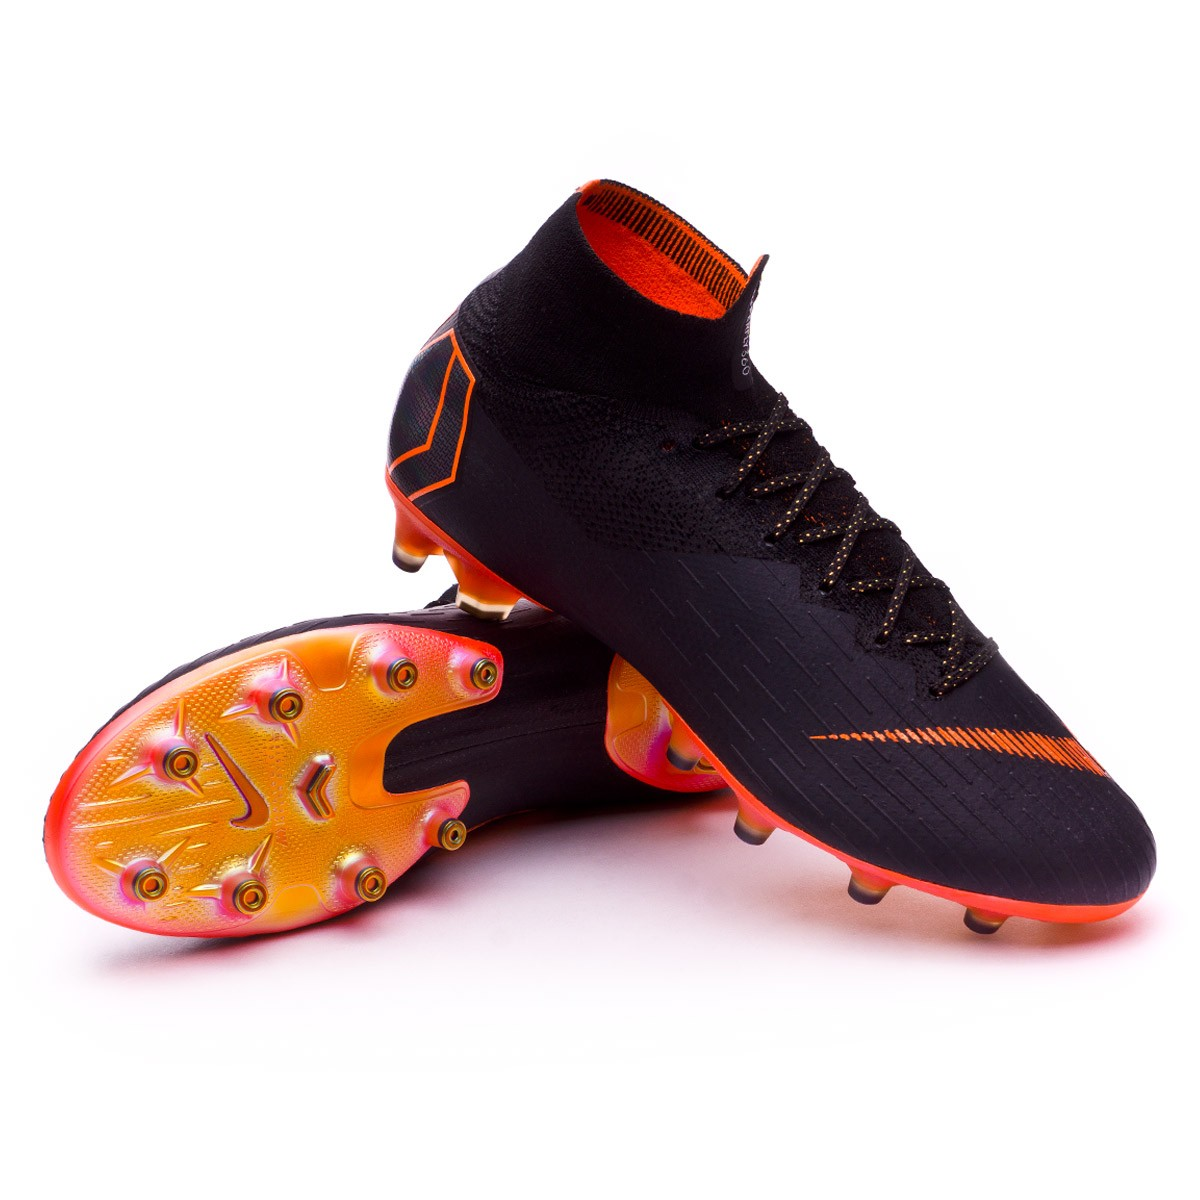 Boot Nike Mercurial Superfly VI Elite AG-Pro Black-Total orange ... d59b71276